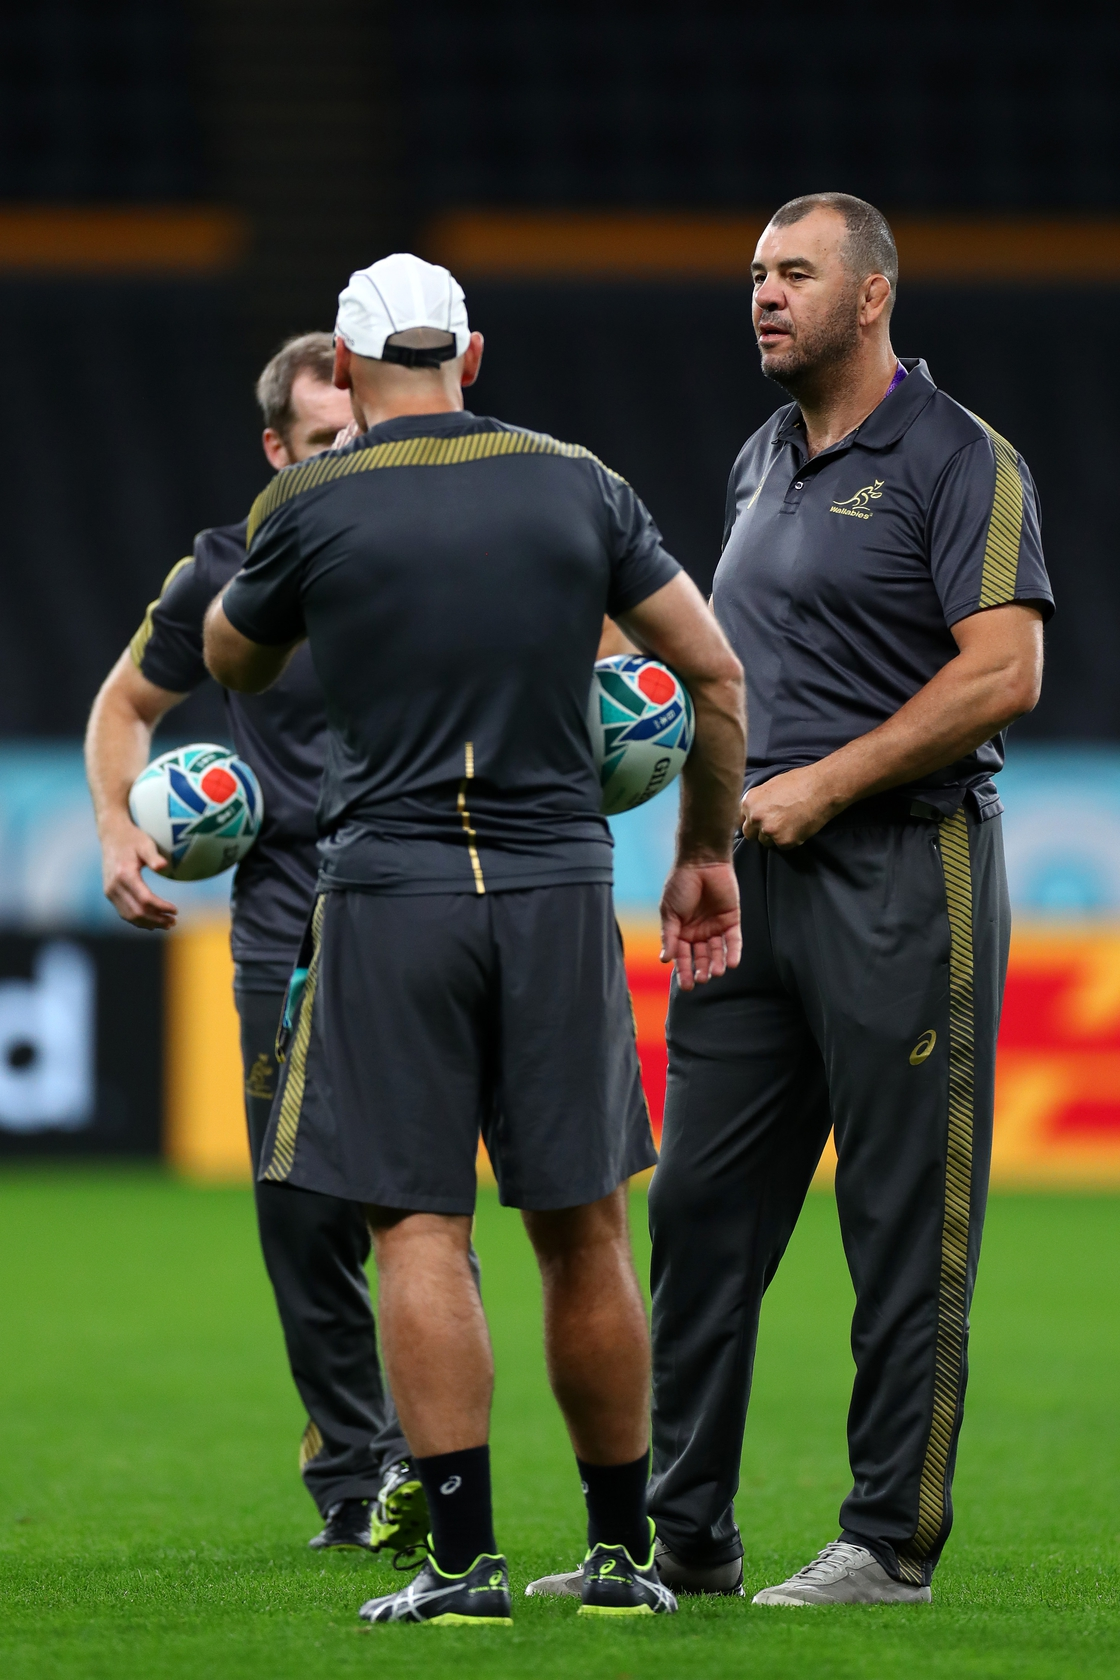 Image - Michael Cheika (r) at the 2019 World Cup with his coaches Nathan Grey and Shaun Berne